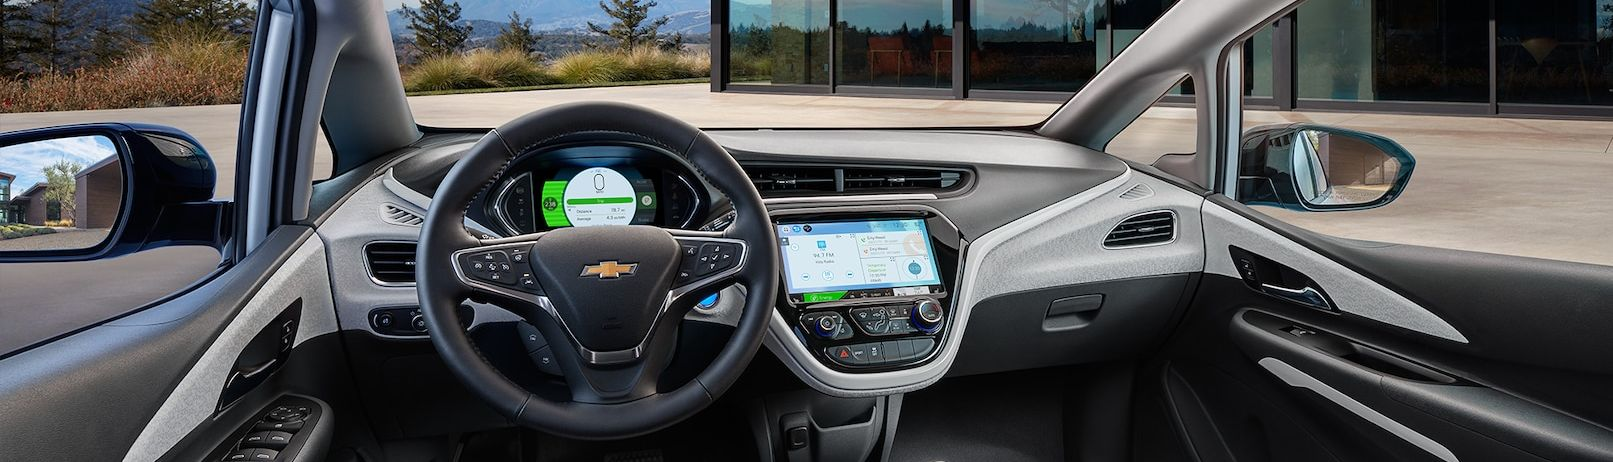 Interior of the 2019 Bolt EV